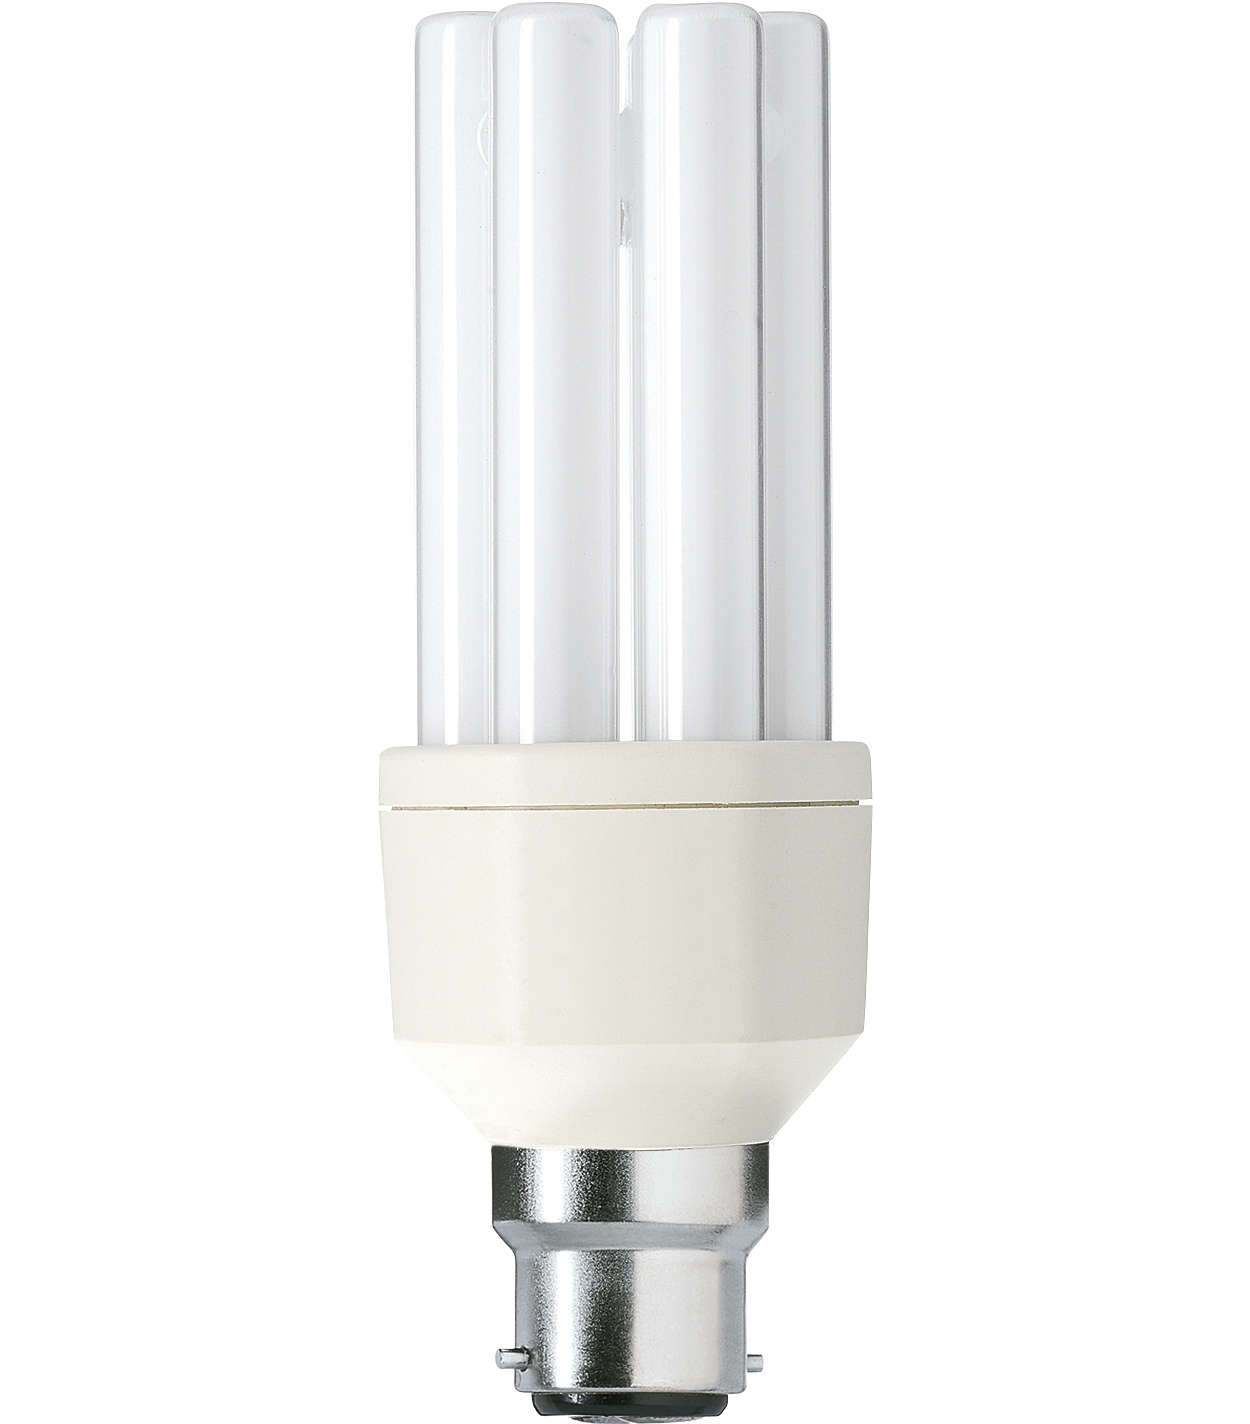 Green Flagship product as best environmental choice in the energy saving lamps portfolio